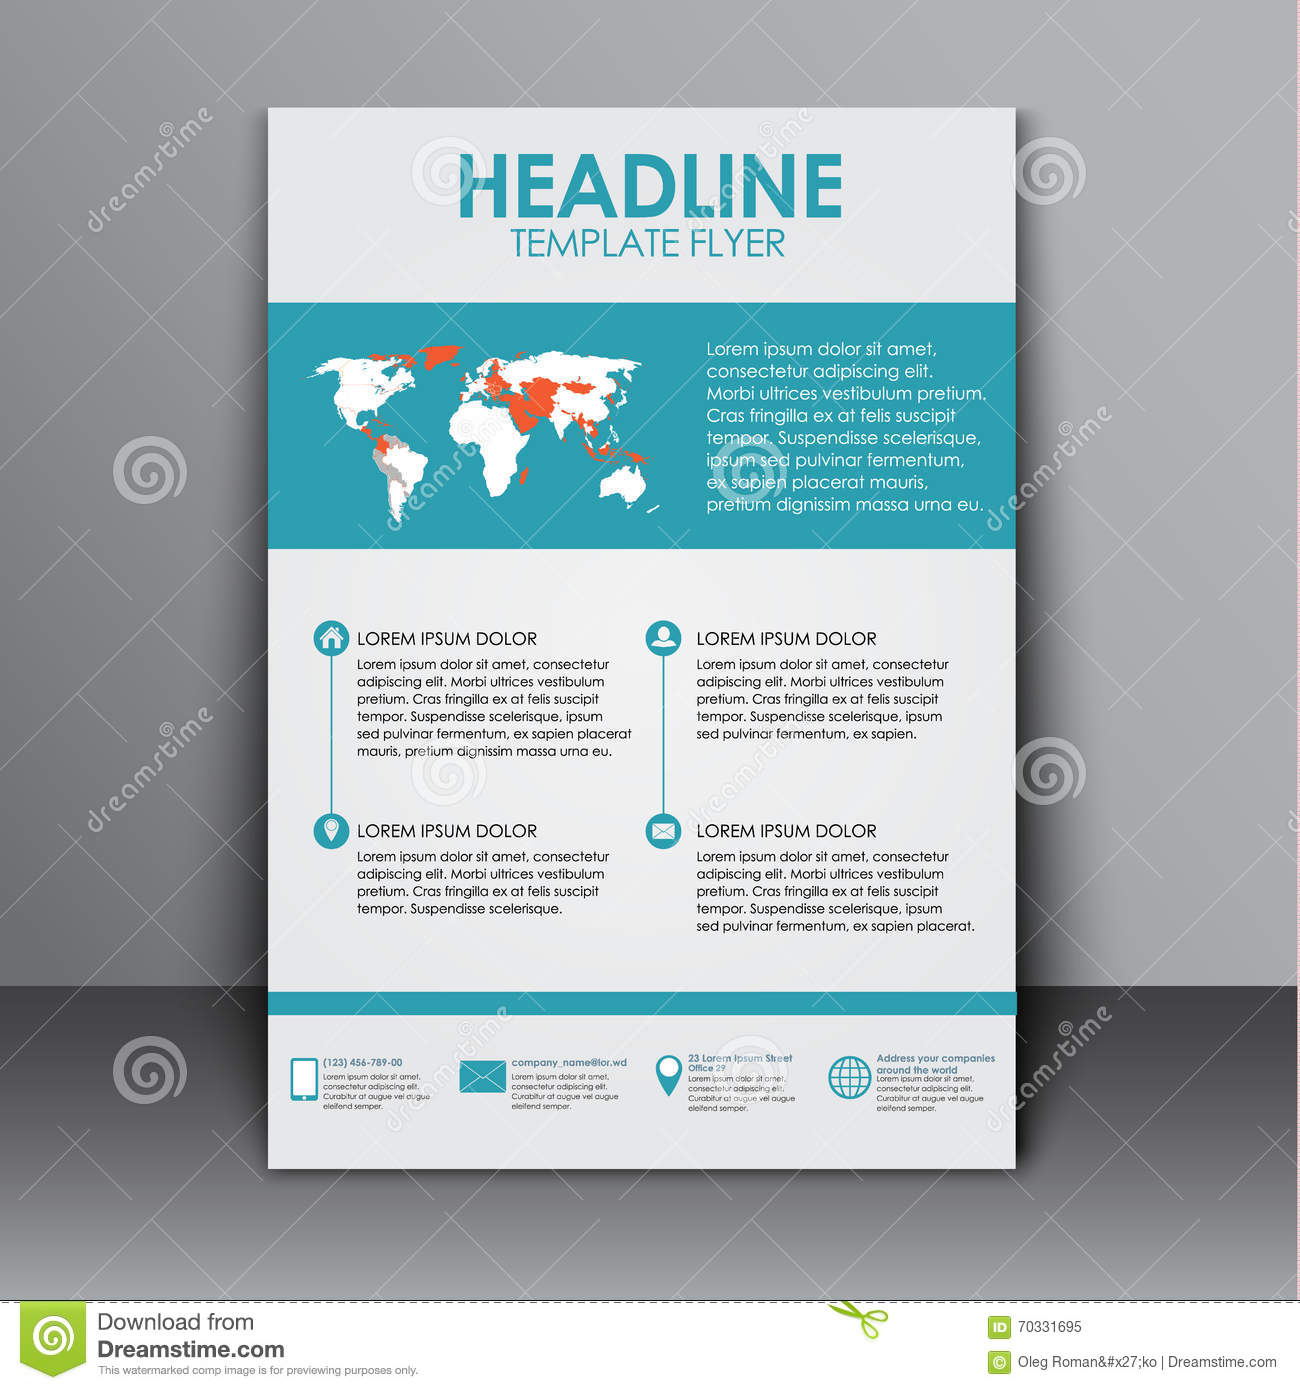 Template flyer with information for advertising stock vector template flyer with information for advertising publicscrutiny